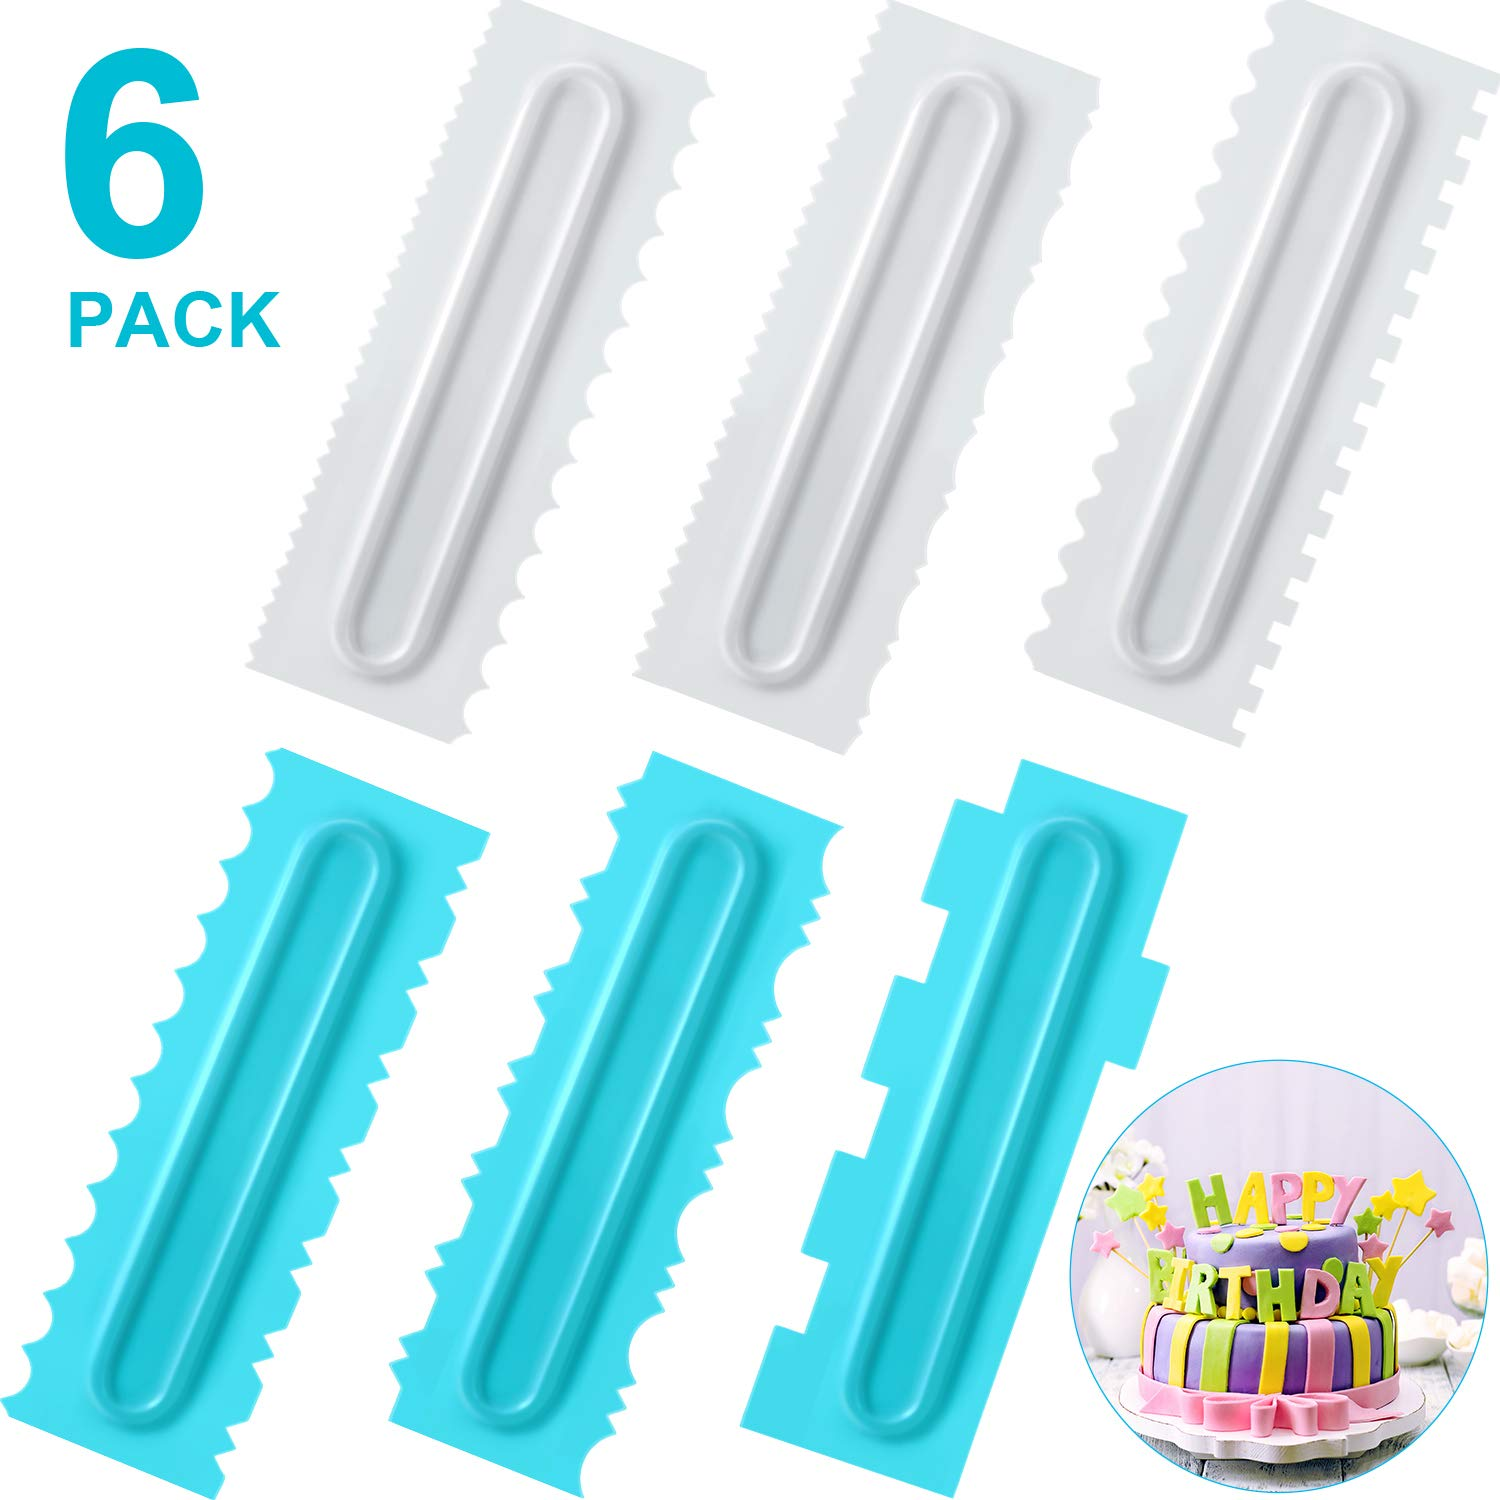 Cake Scraper Set of 6, Decorating Comb and Icing Smoother, Plastic Sawtooth Cake Scraper Polishe, Decorating Butter Mousse Cream Cake Edge Kitchen Baking Mold DIY Tool by Boao